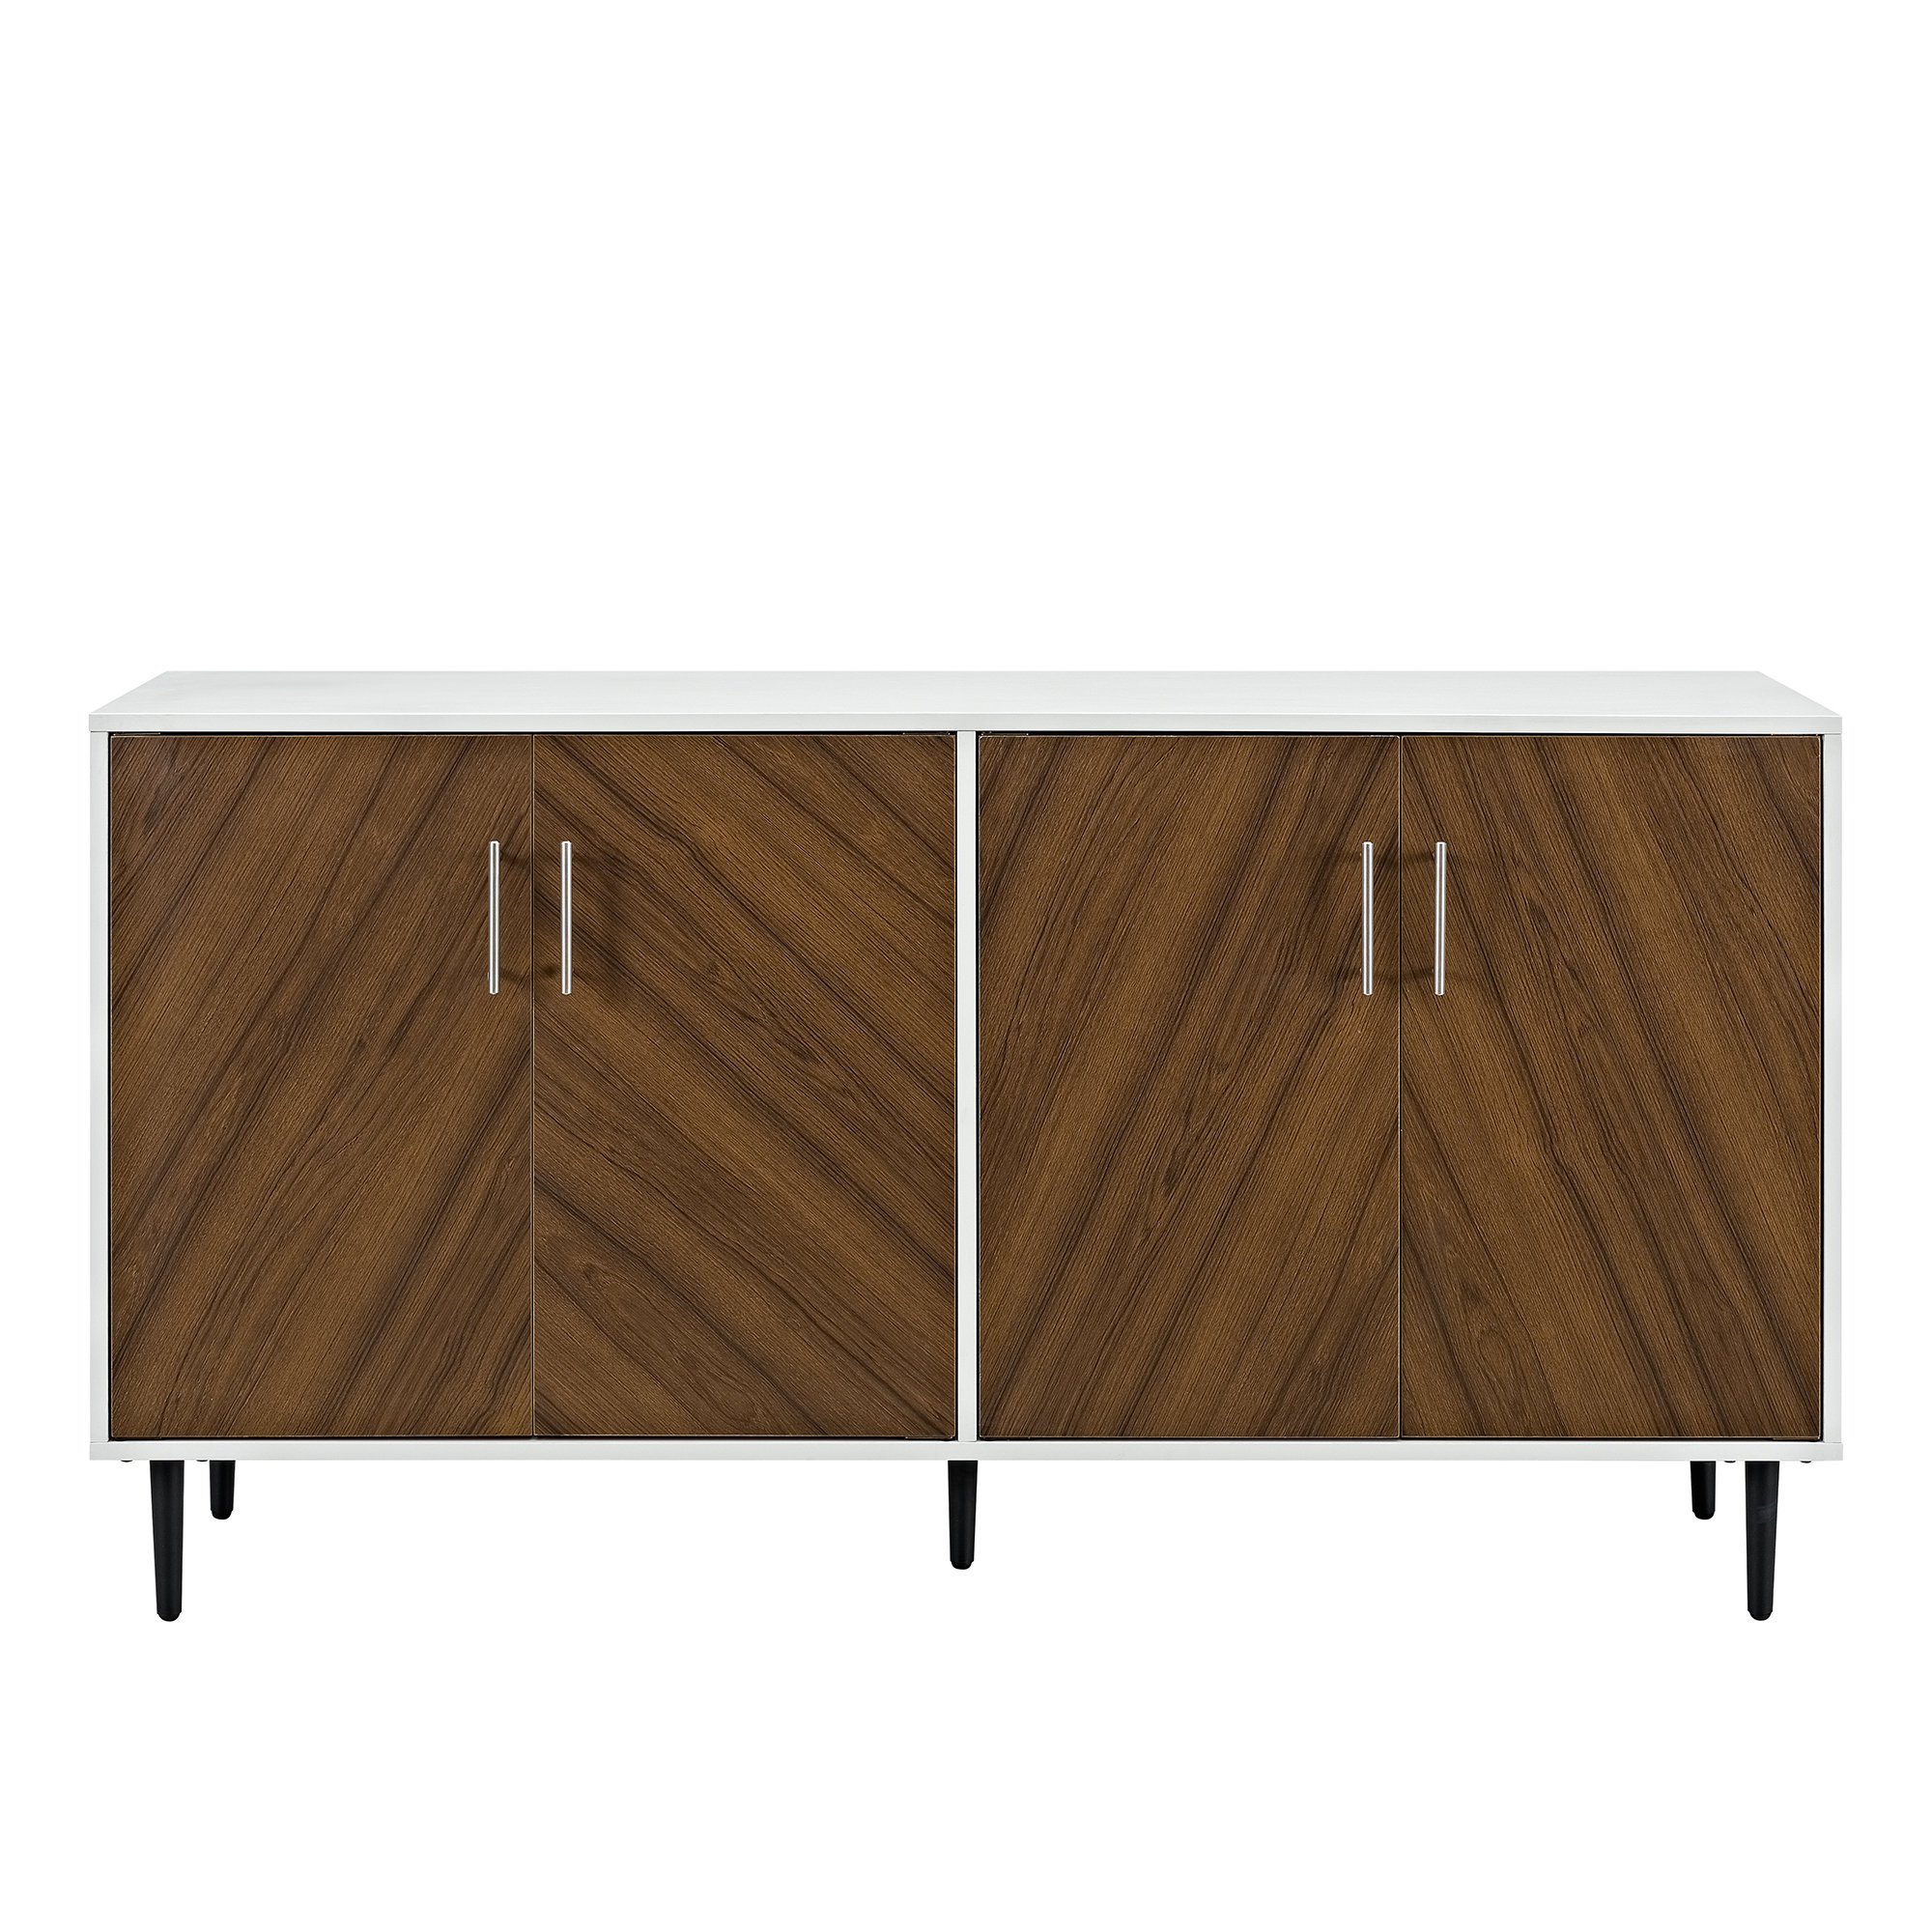 Modern & Contemporary High Gloss White Buffet | Allmodern With Malibu 2 Door 4 Drawer Sideboards (View 18 of 20)